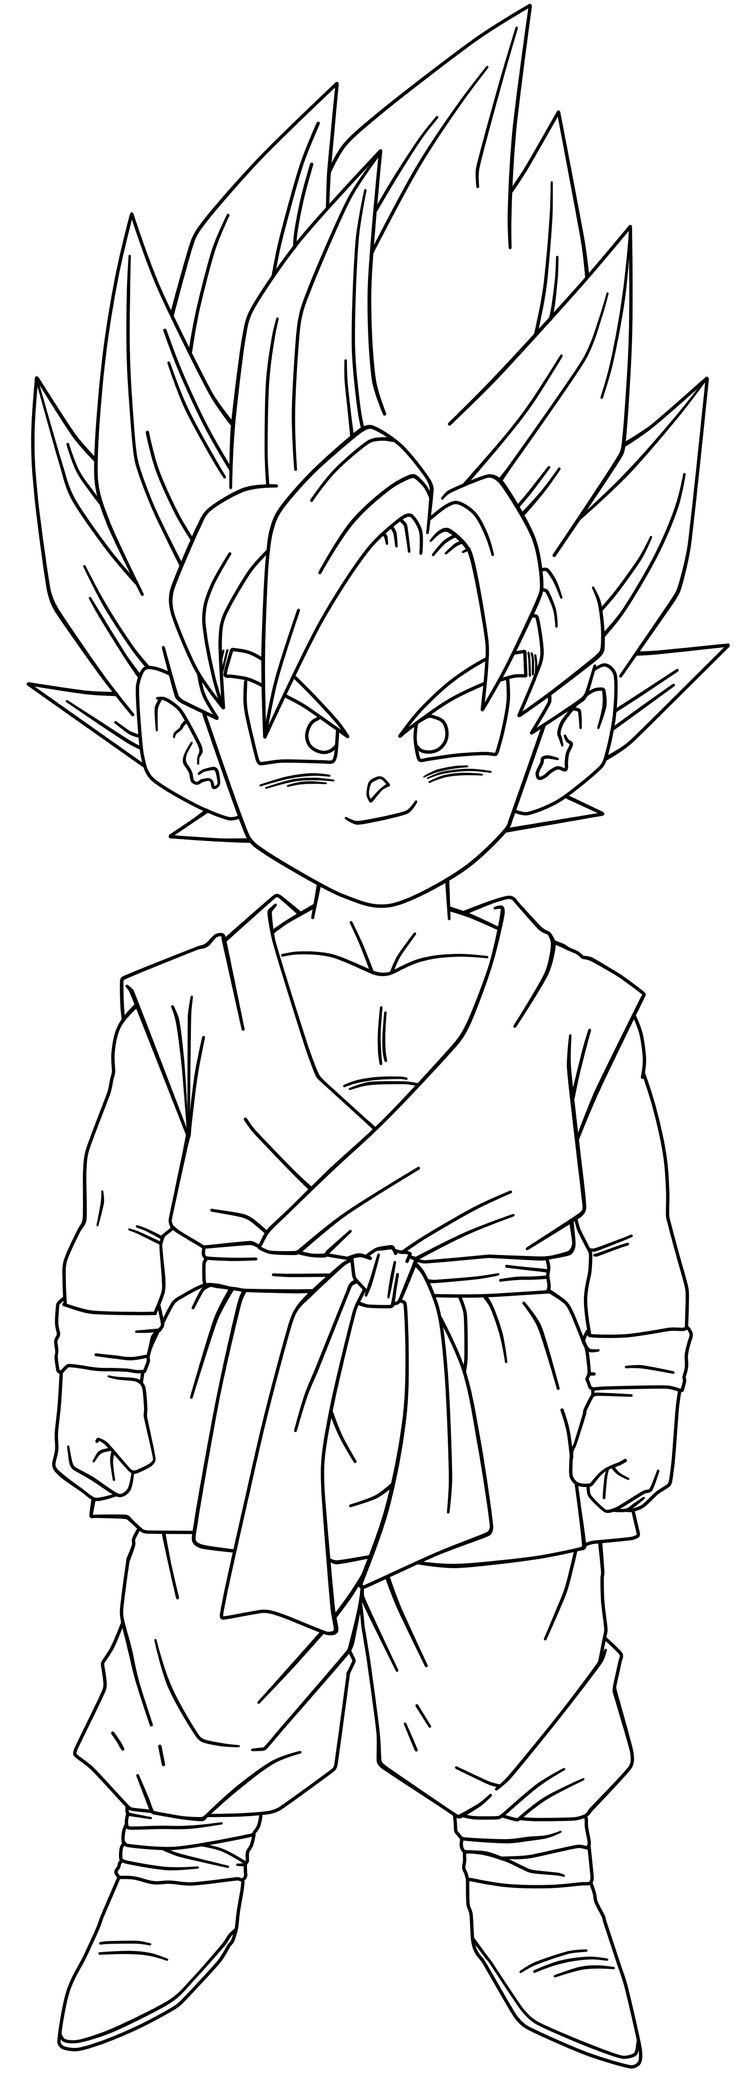 dbz coloring pages goku | Goku Ssj2 Coloring Pages Coloring Pages